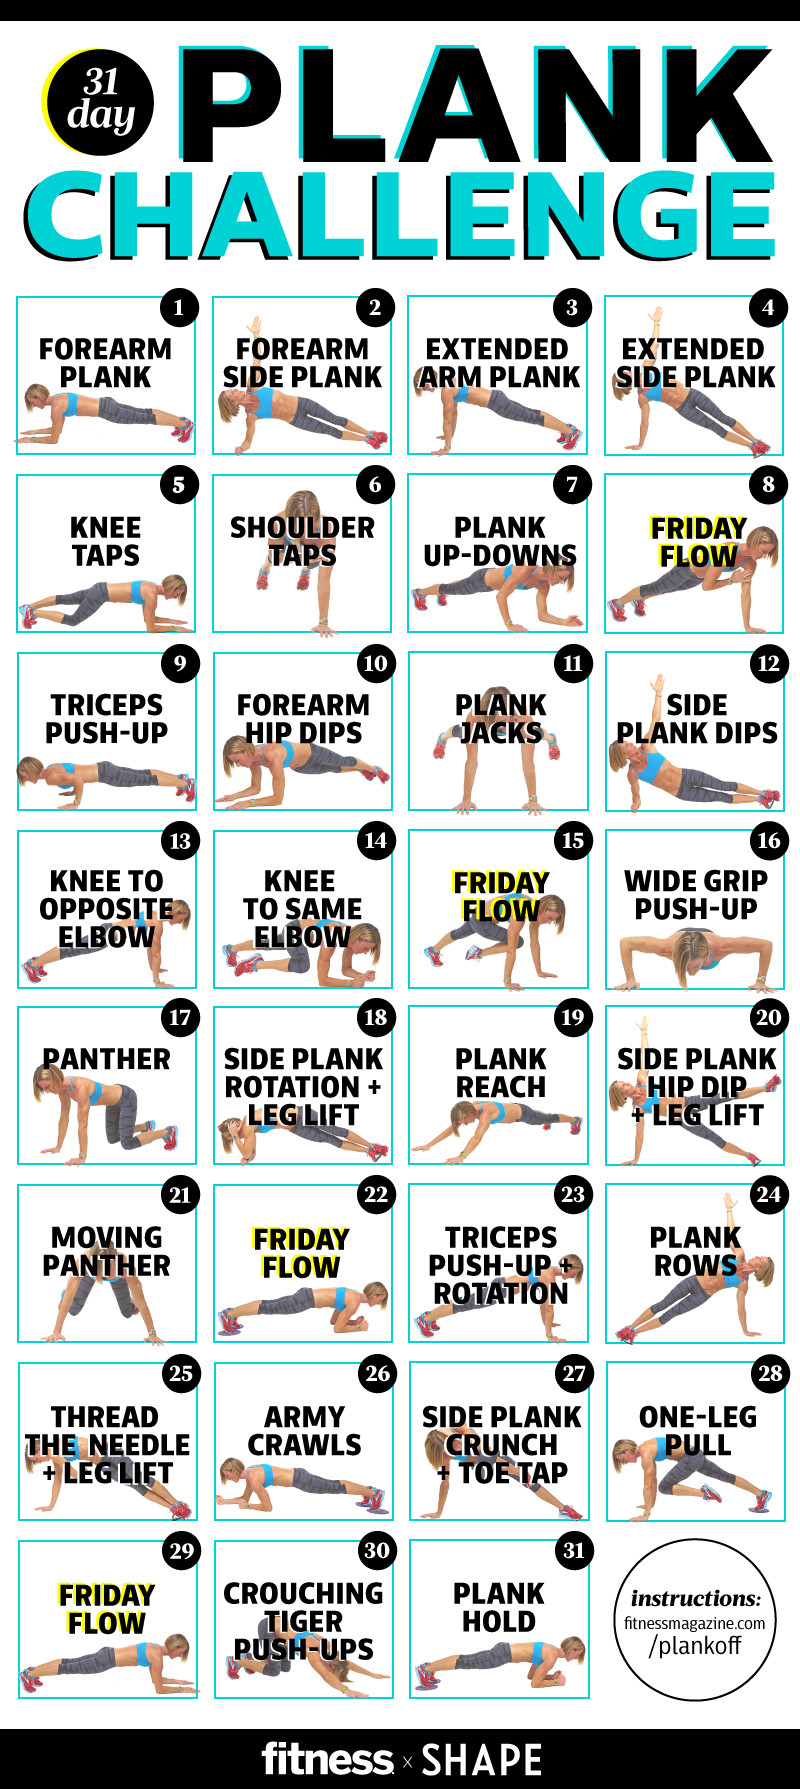 Check out Shape.com for a plank challenge to strengthen core!